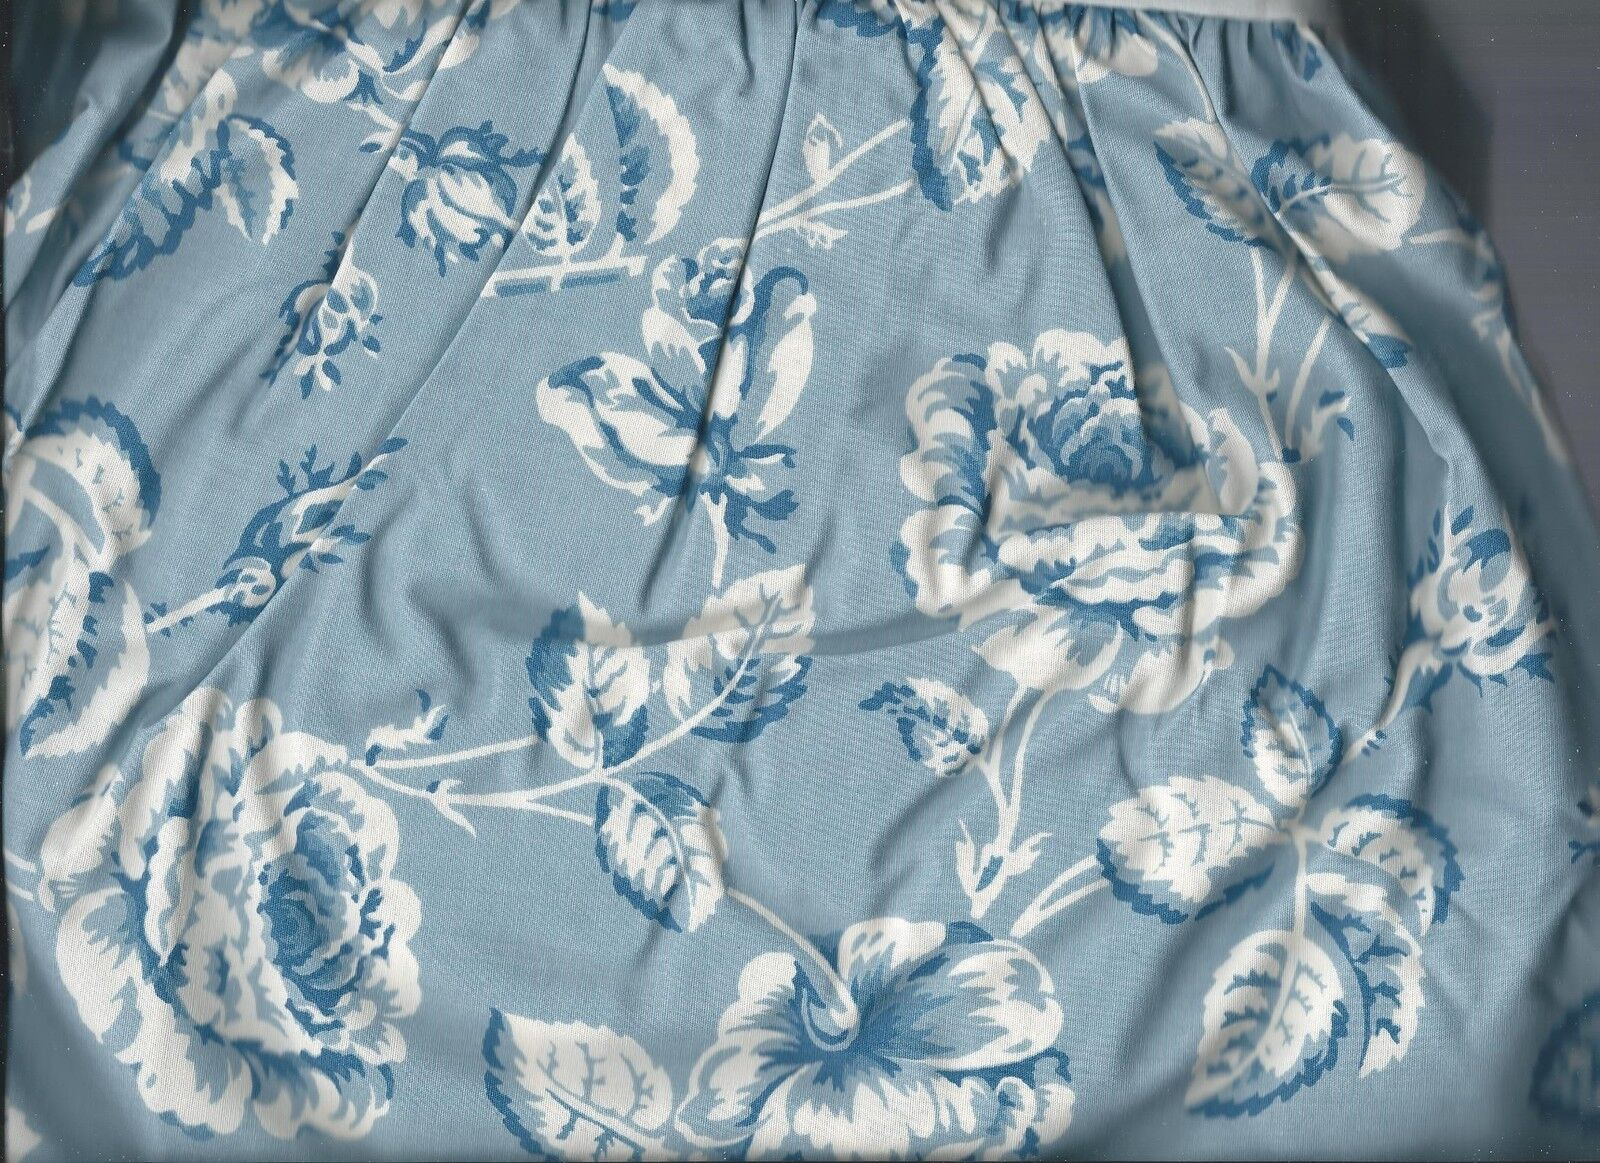 Ralph Lauren Meadowland Floral bluee White Full Bed Skirt Shabby New